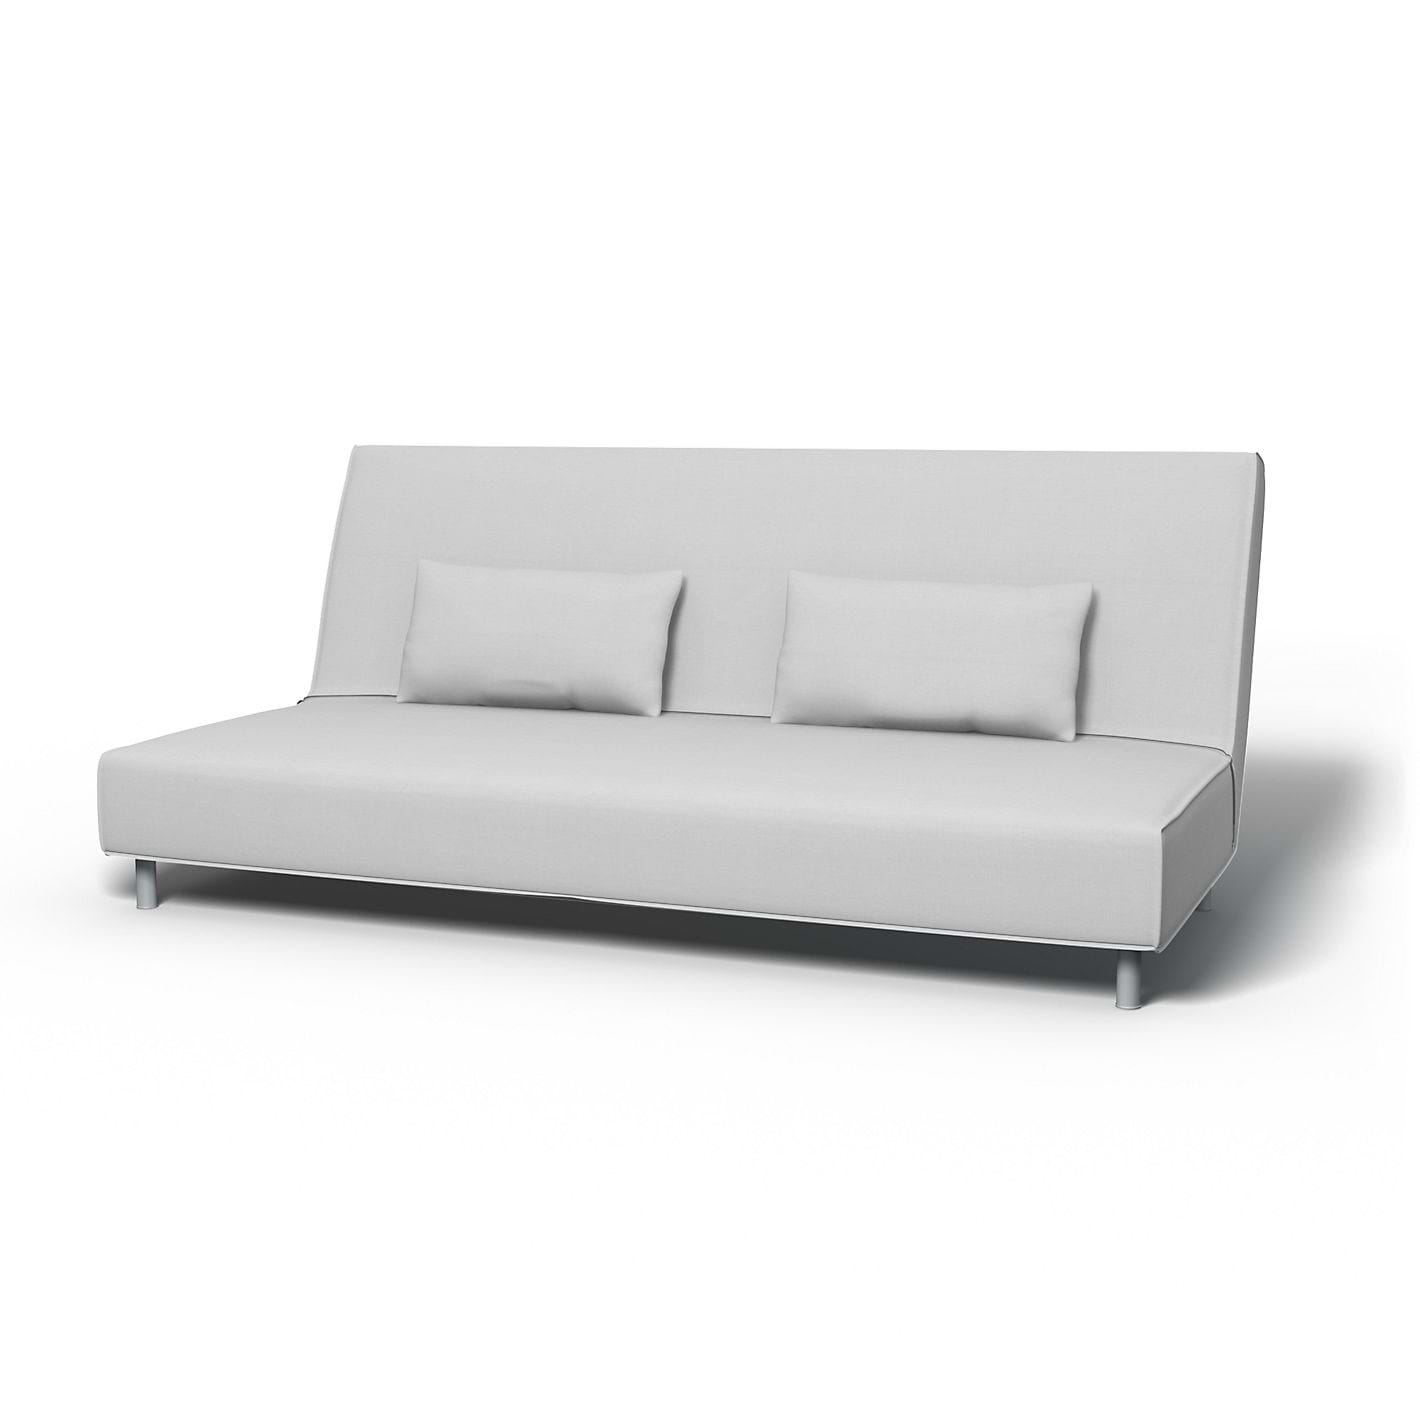 Covers For Ikea Beddinge Sofa Beds